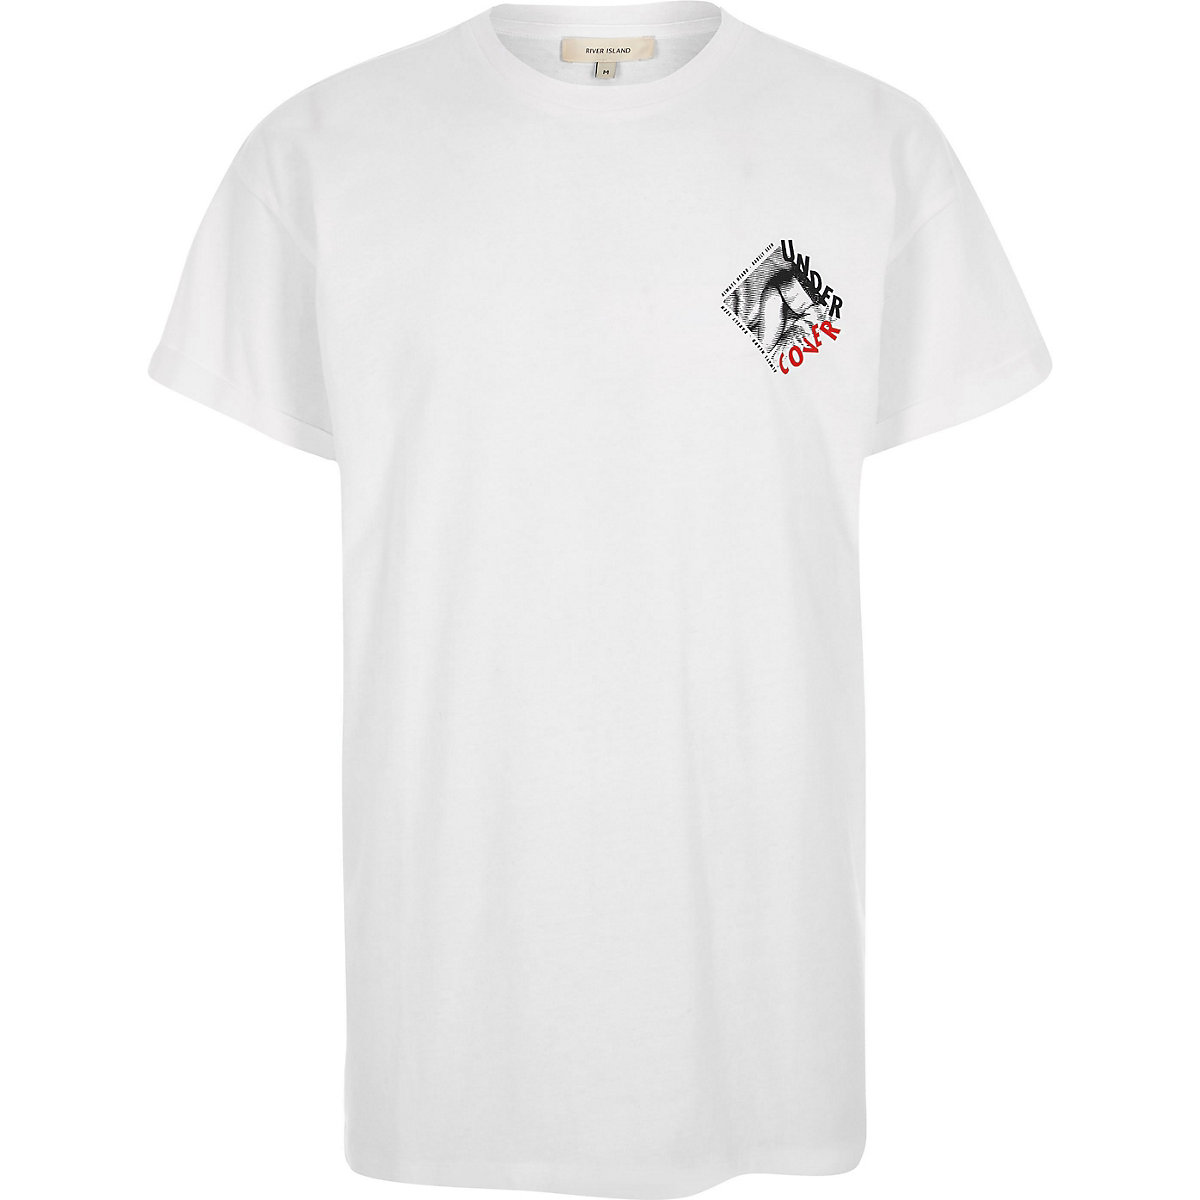 White 'undercover' print crew neck T-shirt